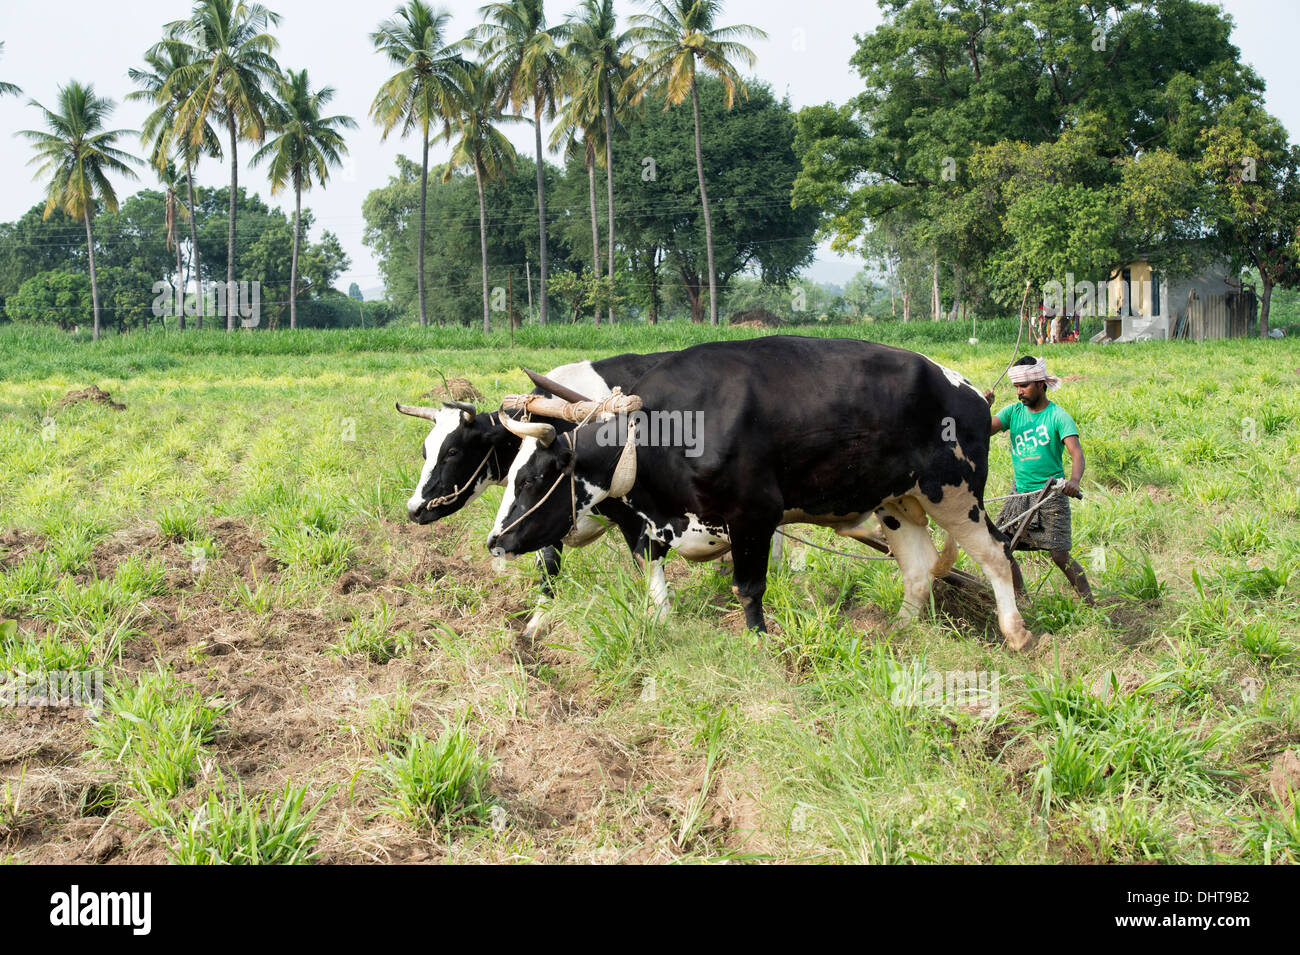 Indian farmer ploughing with bulls using a wooden yoke in the rural indian countryside. Andhra Pradesh, India - Stock Image